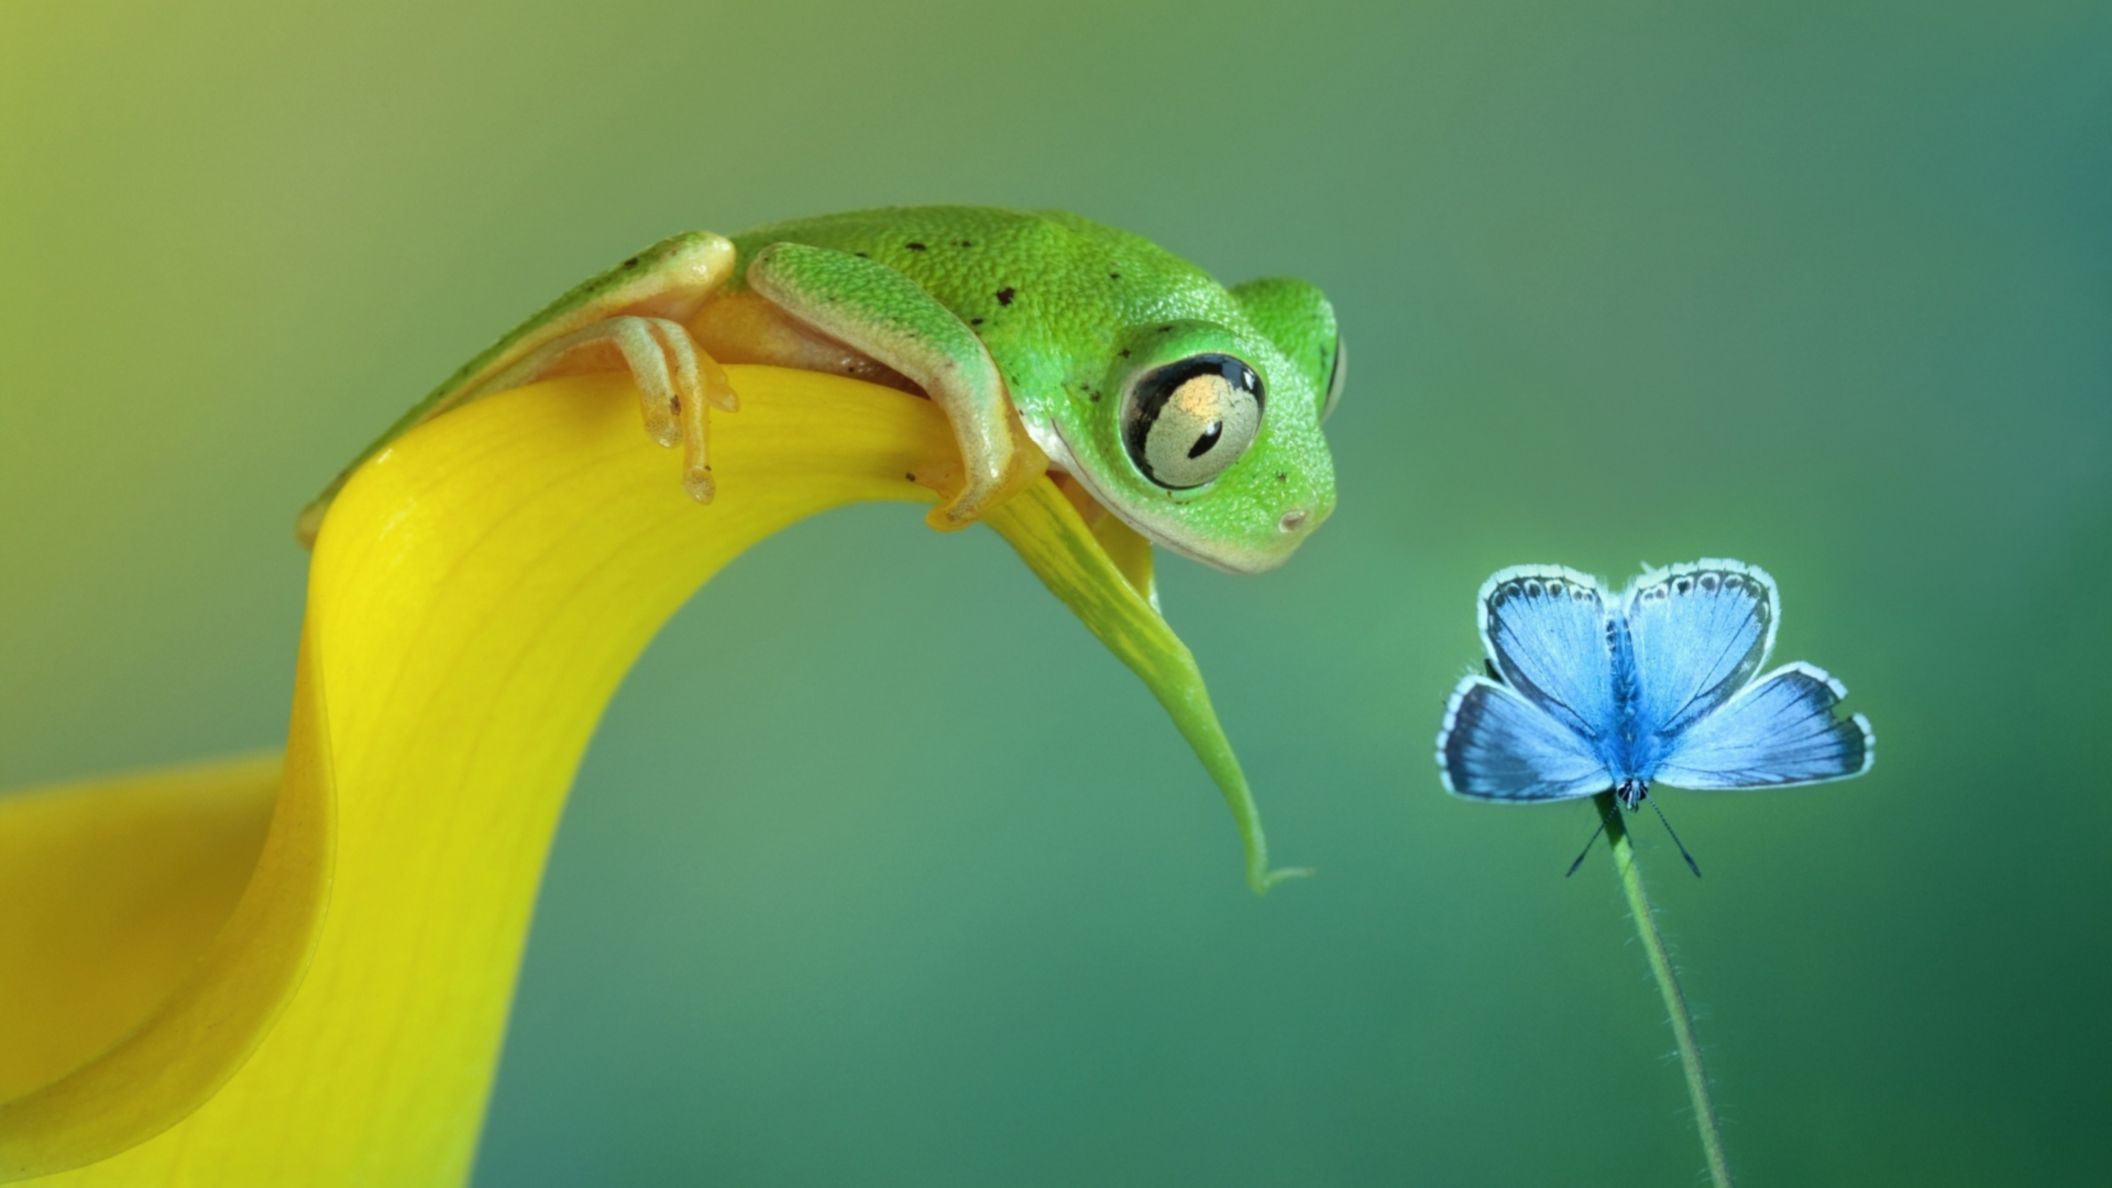 Download free HD Funny Frog And Butterfly Macro Full HD Wallpaper, image